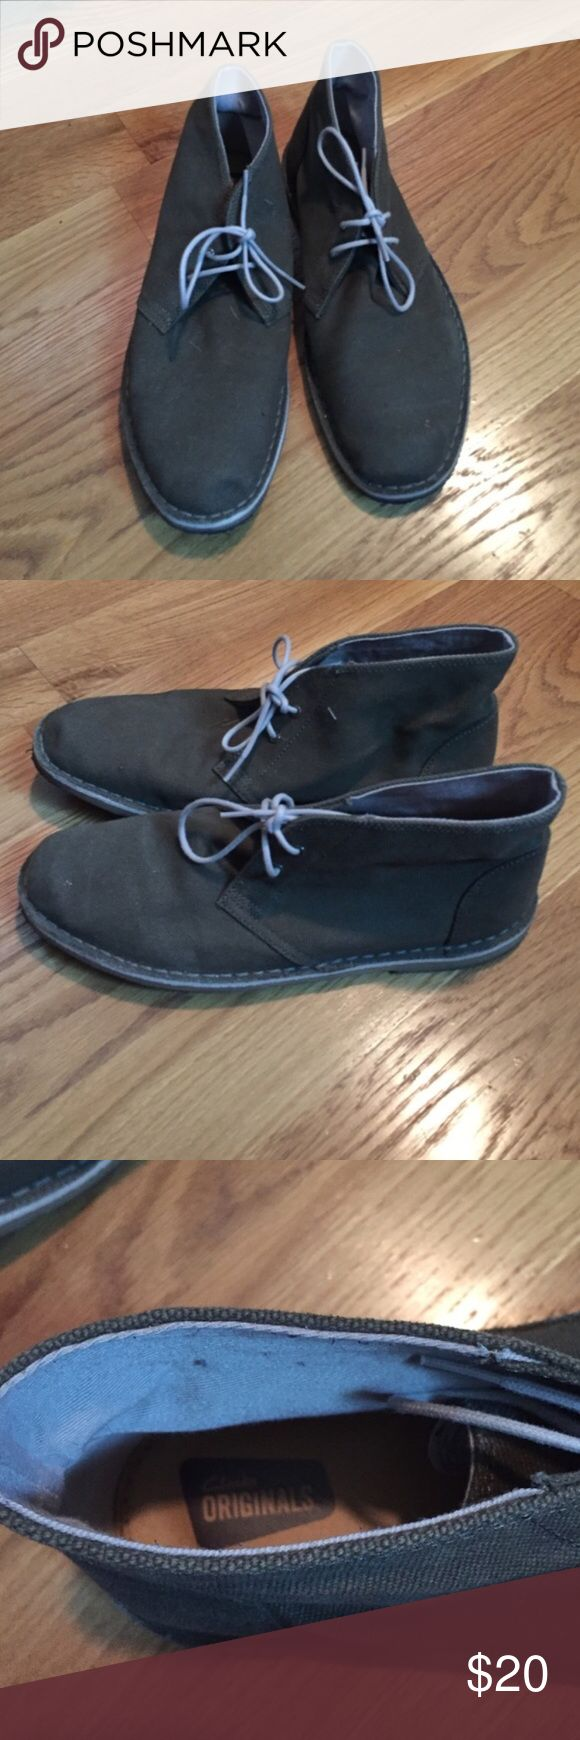 Men's Clarks green jink boots Limited fabric. It is a woven fabric upper in green. Worn 1 - crepe has some dirt on it but also helped to break them in! Clarks Shoes Chukka Boots